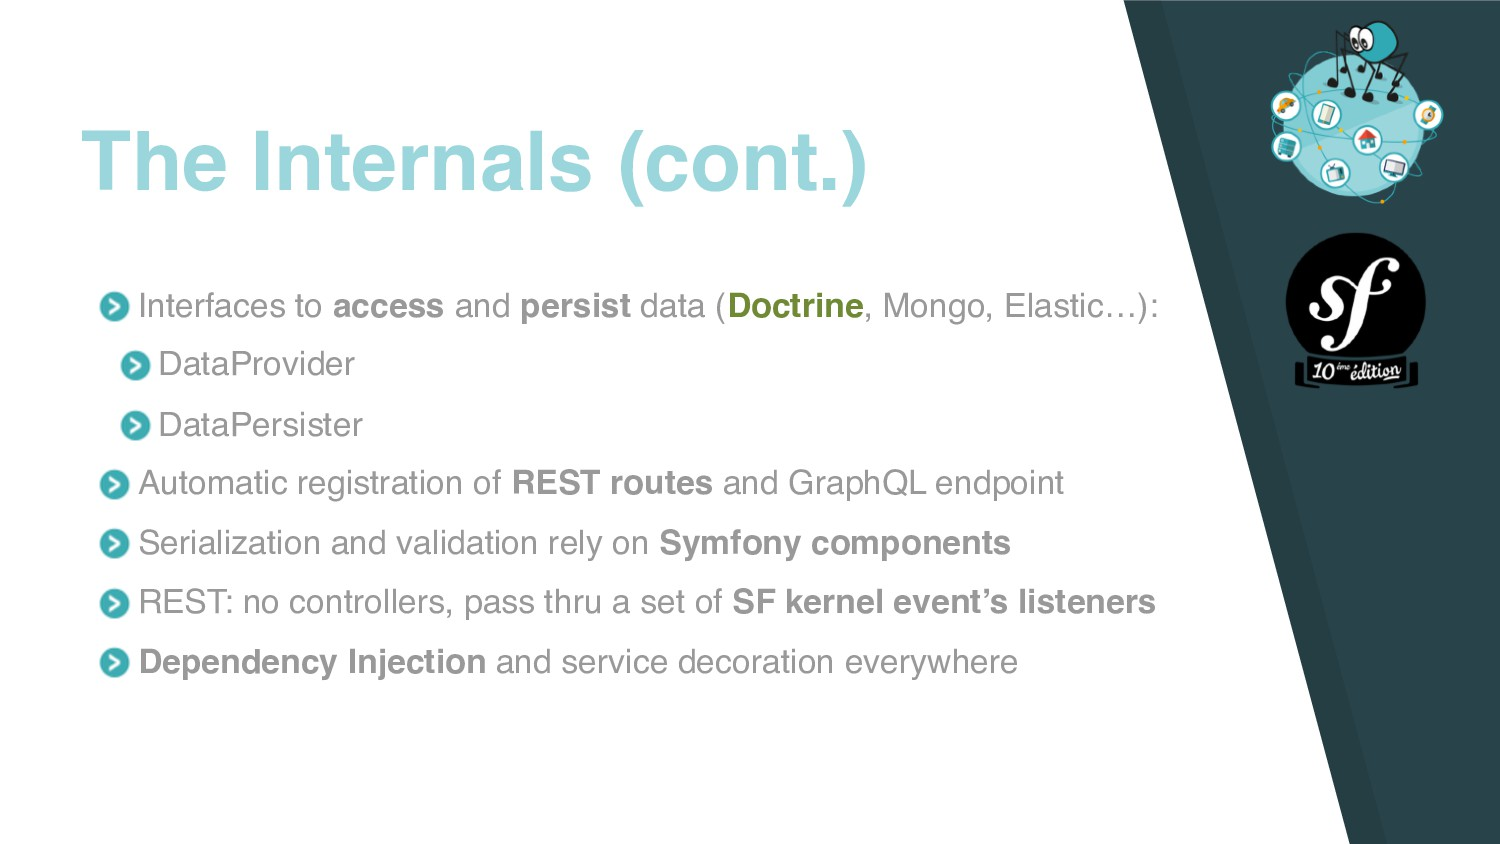 Interfaces to access and persist data (Doctrine...